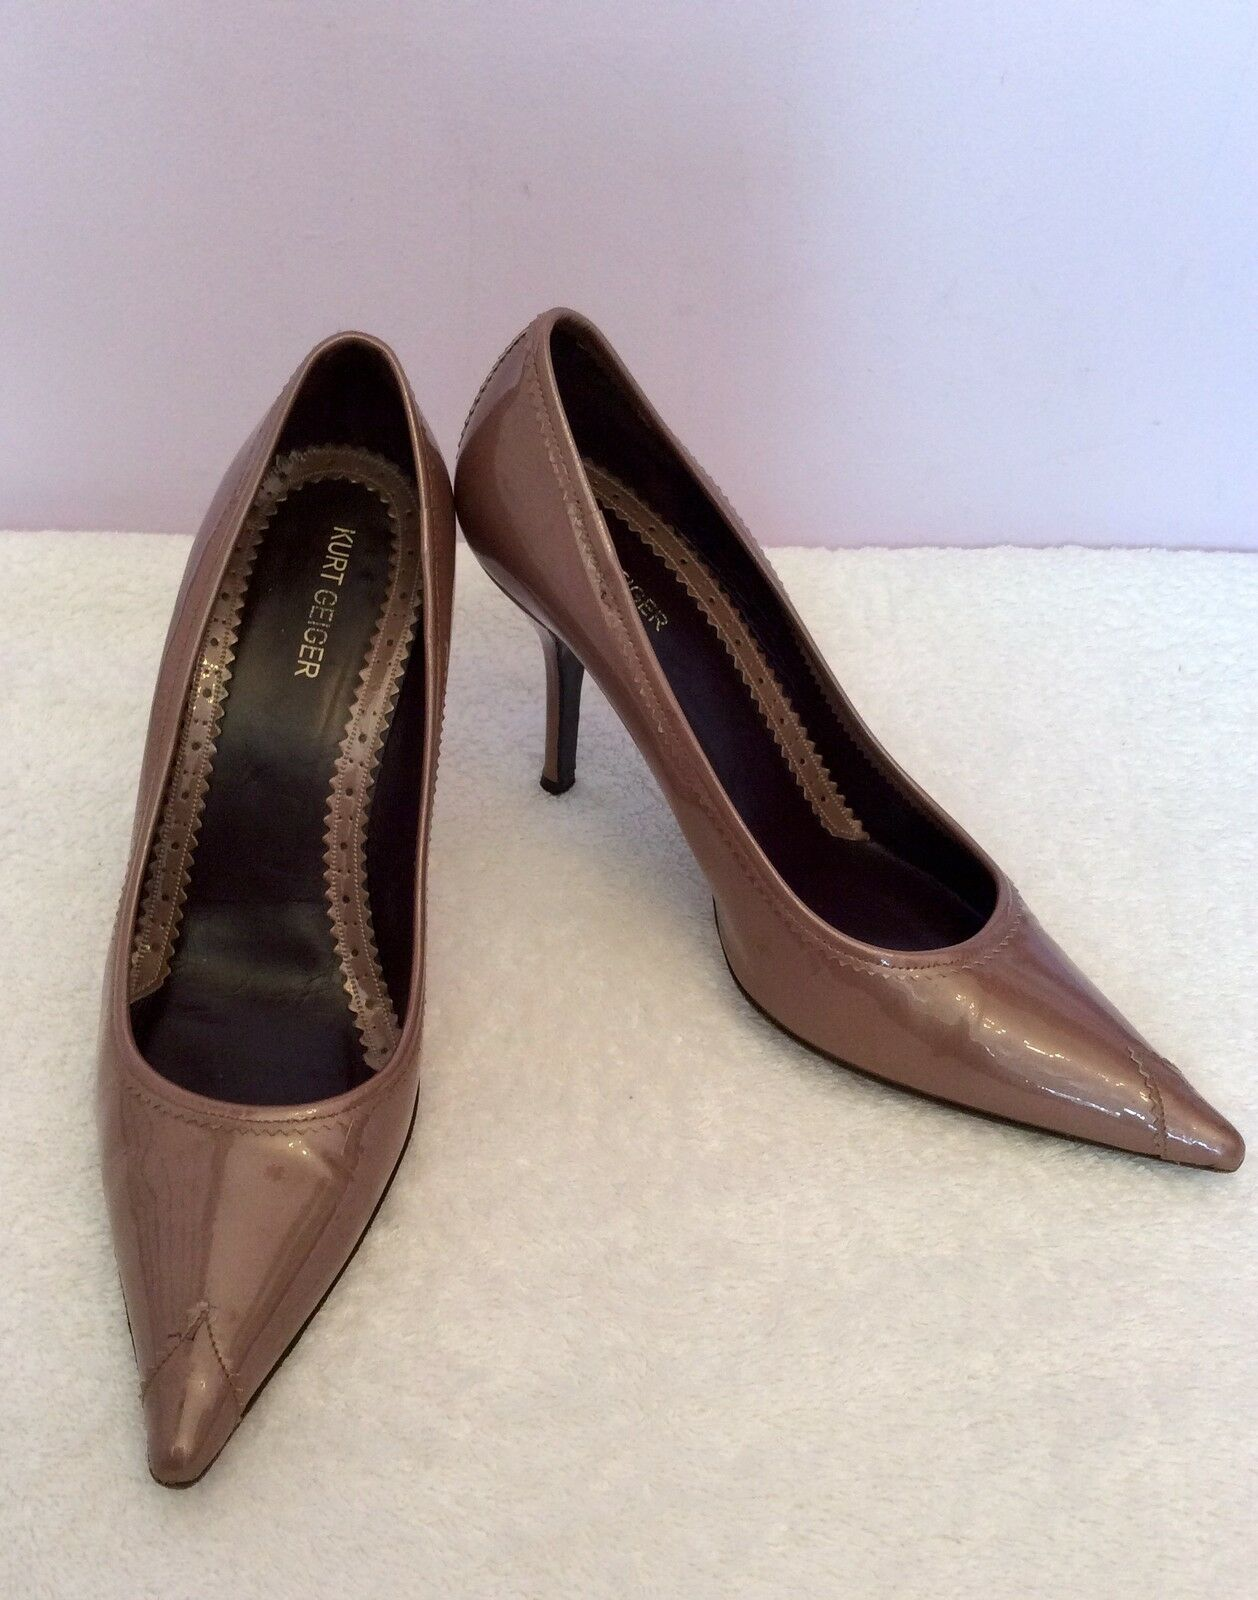 KURT GEIGER BROWN PATENT LEATHER  HEELS SIZE 5 38 WORN ONCE ONLY